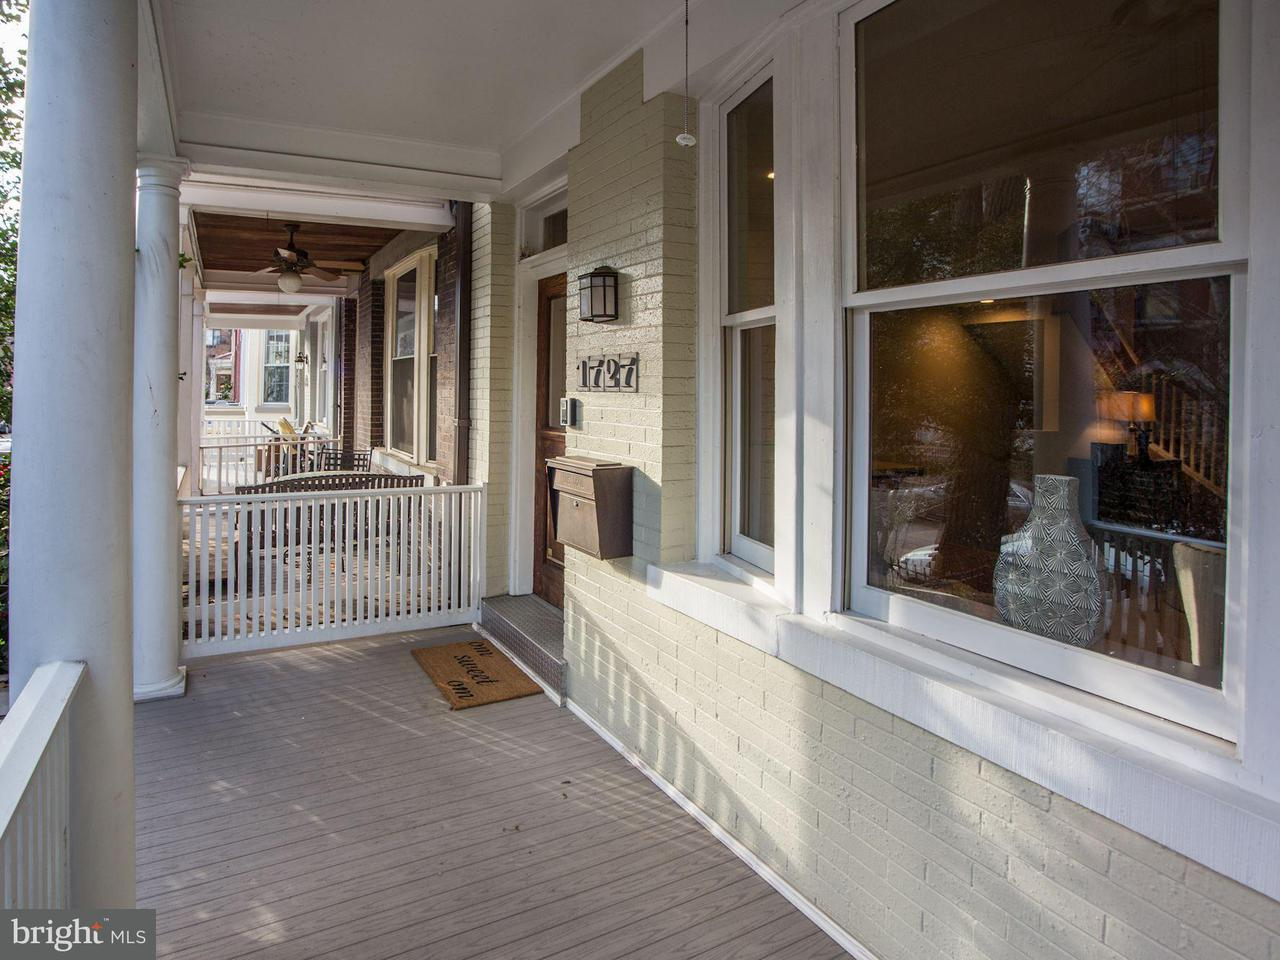 Townhouse for Sale at 1727 Swann St Nw 1727 Swann St Nw Washington, District Of Columbia 20009 United States